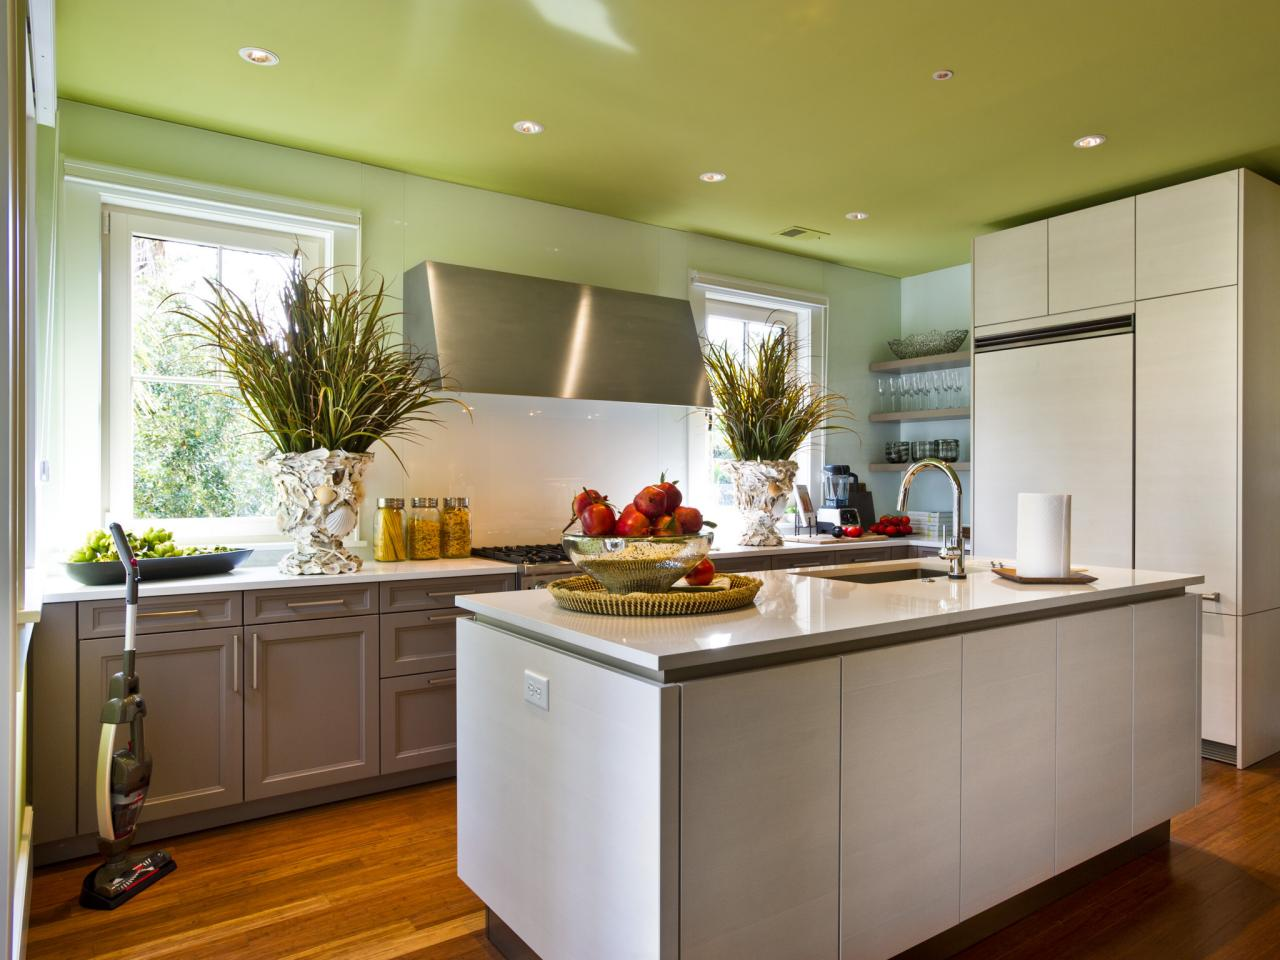 Painting kitchen ceilings pictures ideas tips from hgtv hgtv Kitchen colour design tips